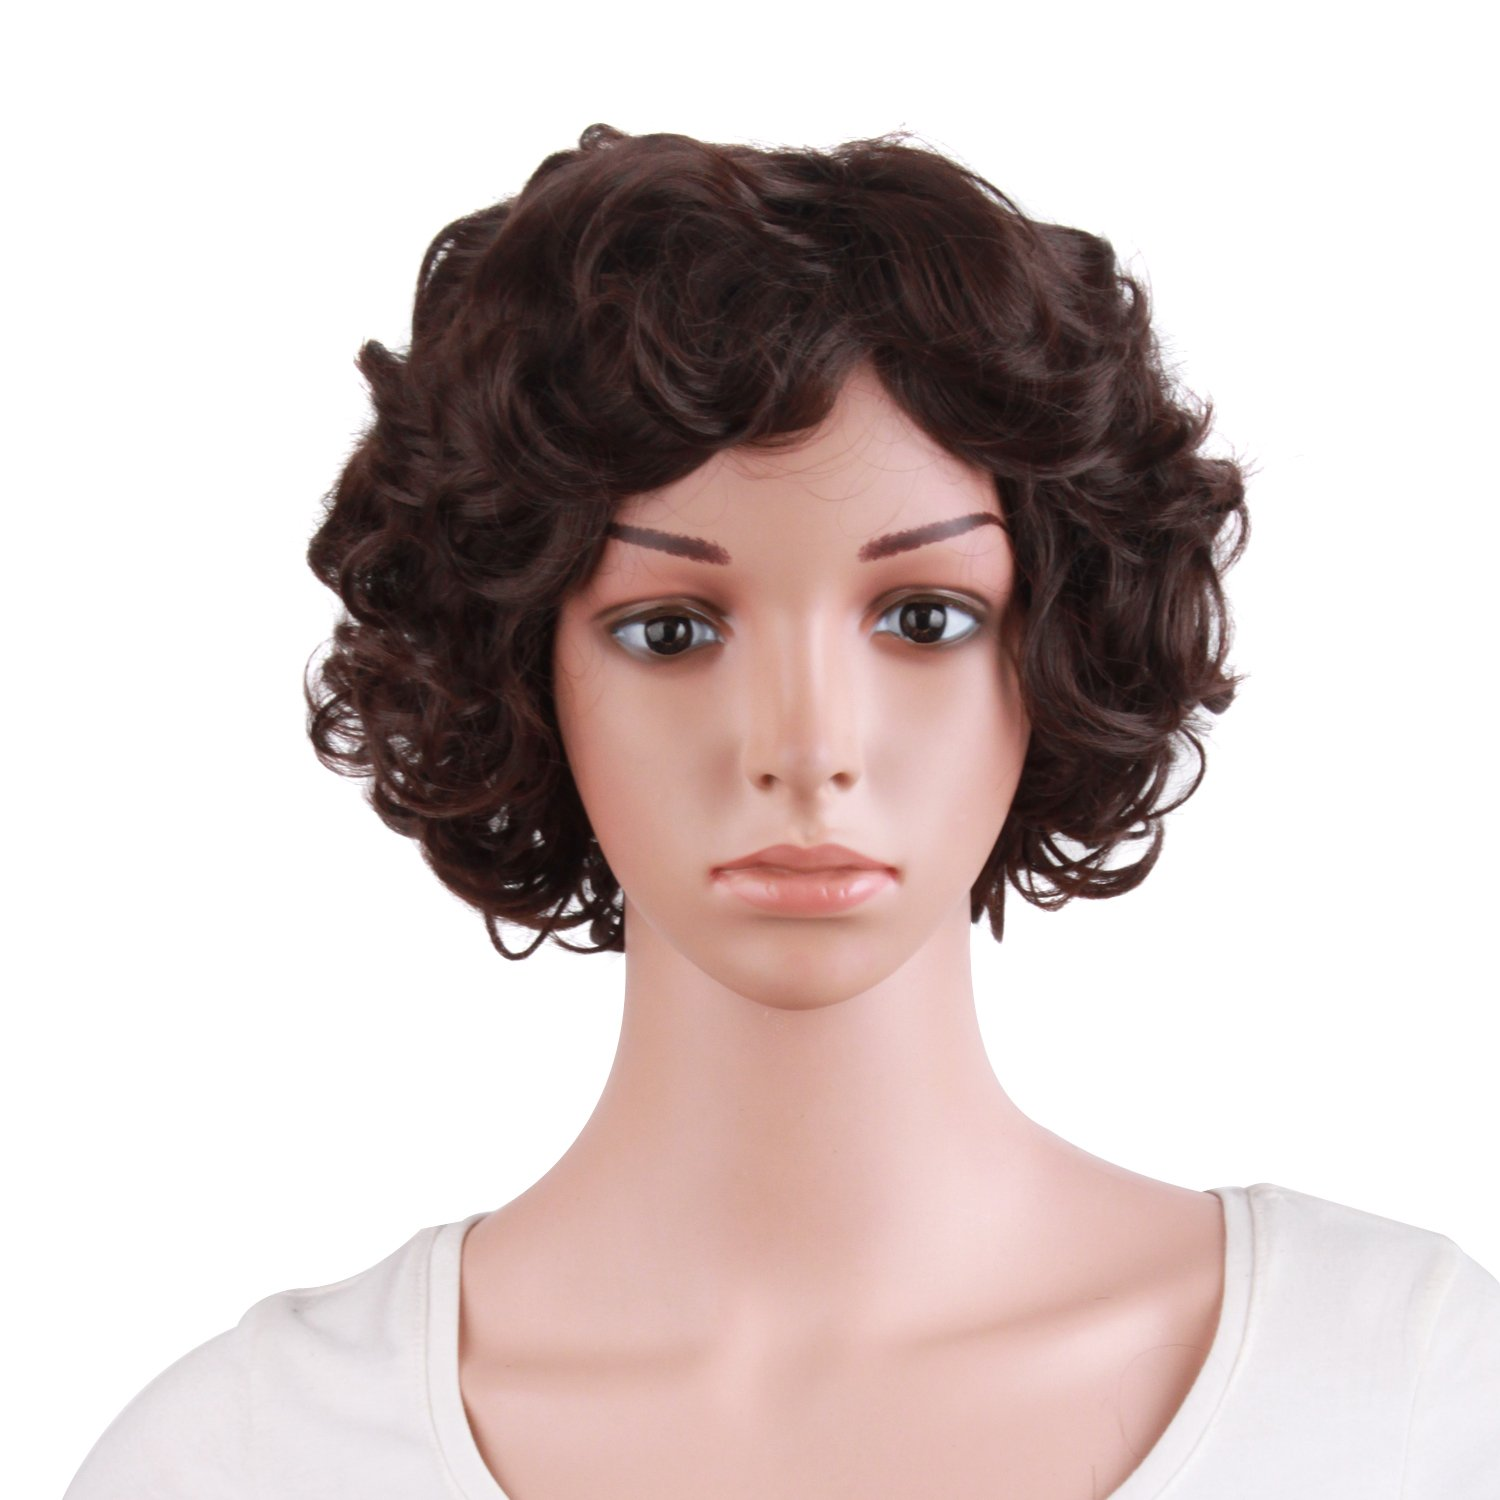 MapofBeauty 10 Inch/25cm Special Elderly Short Curly Fashion Wigs(Dark Brown) by MapofBeauty